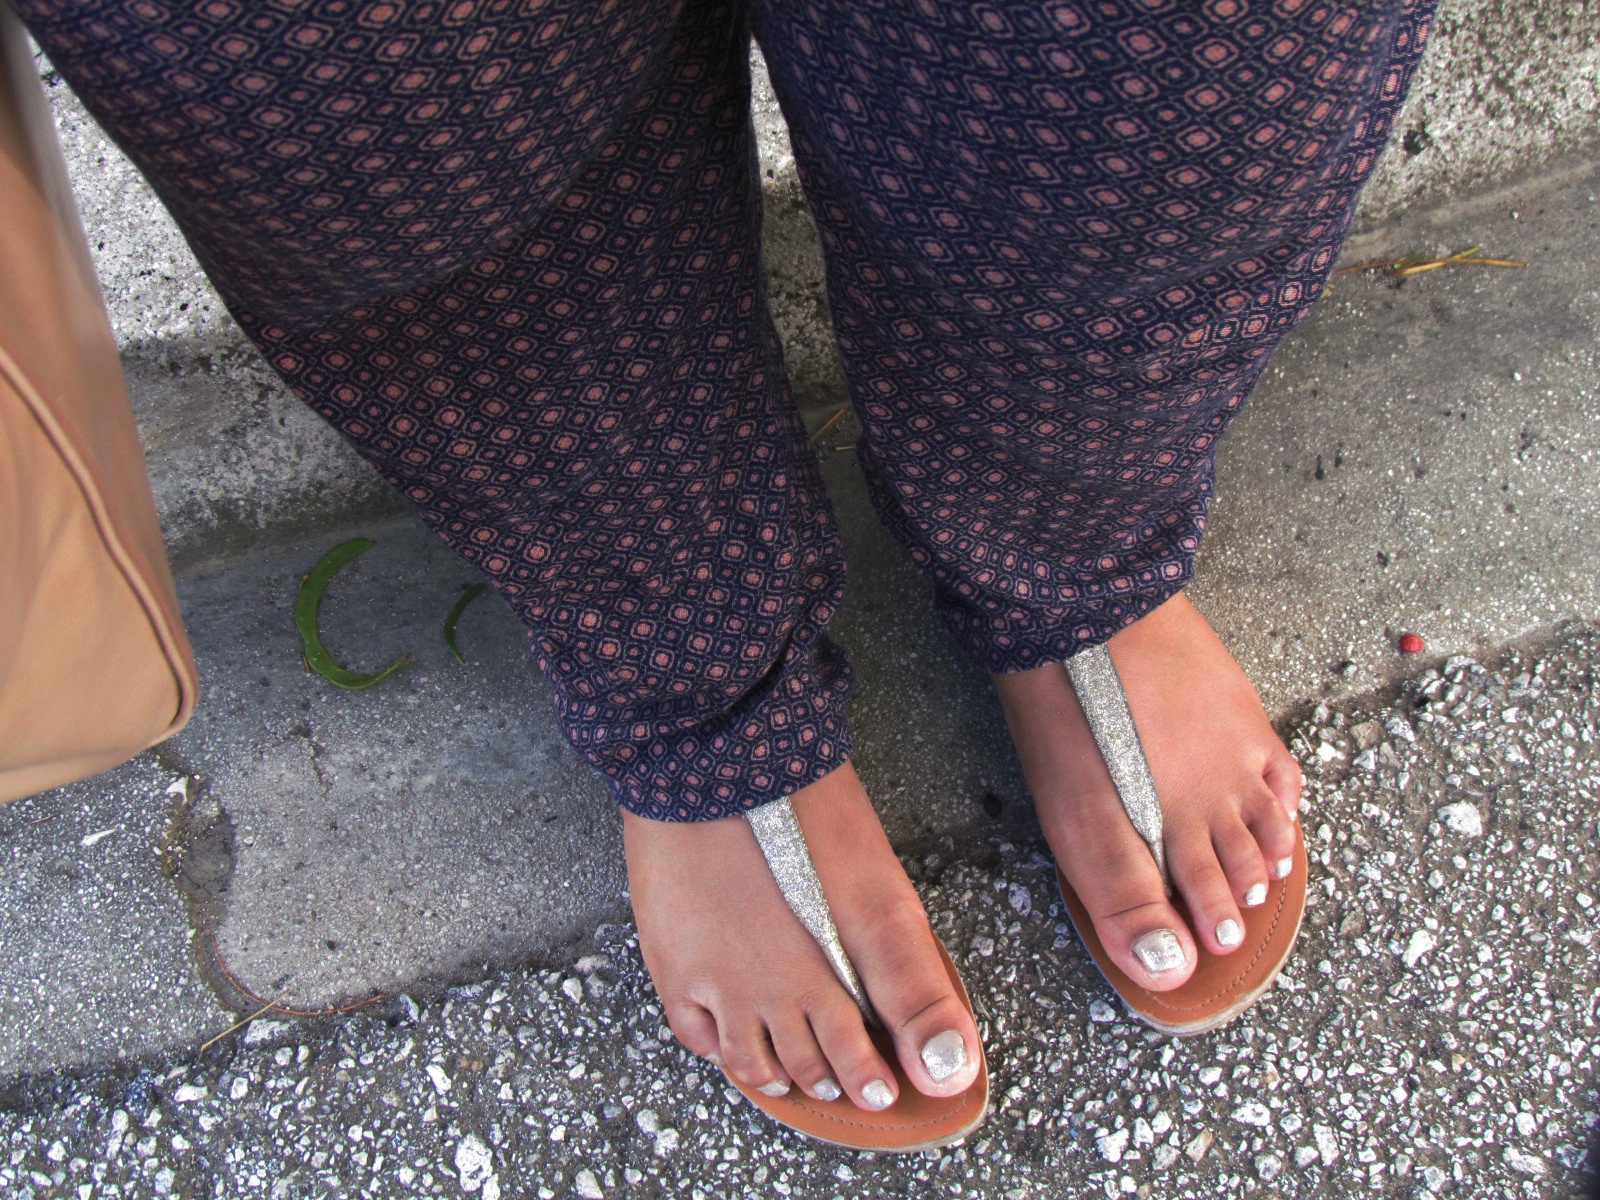 new look, zara, yes or no, kipling, h&m, hnm,hm, ootd, wiww, wiwt, blog, fashion, style, how to, jumpsuit, waist belt, supertrash